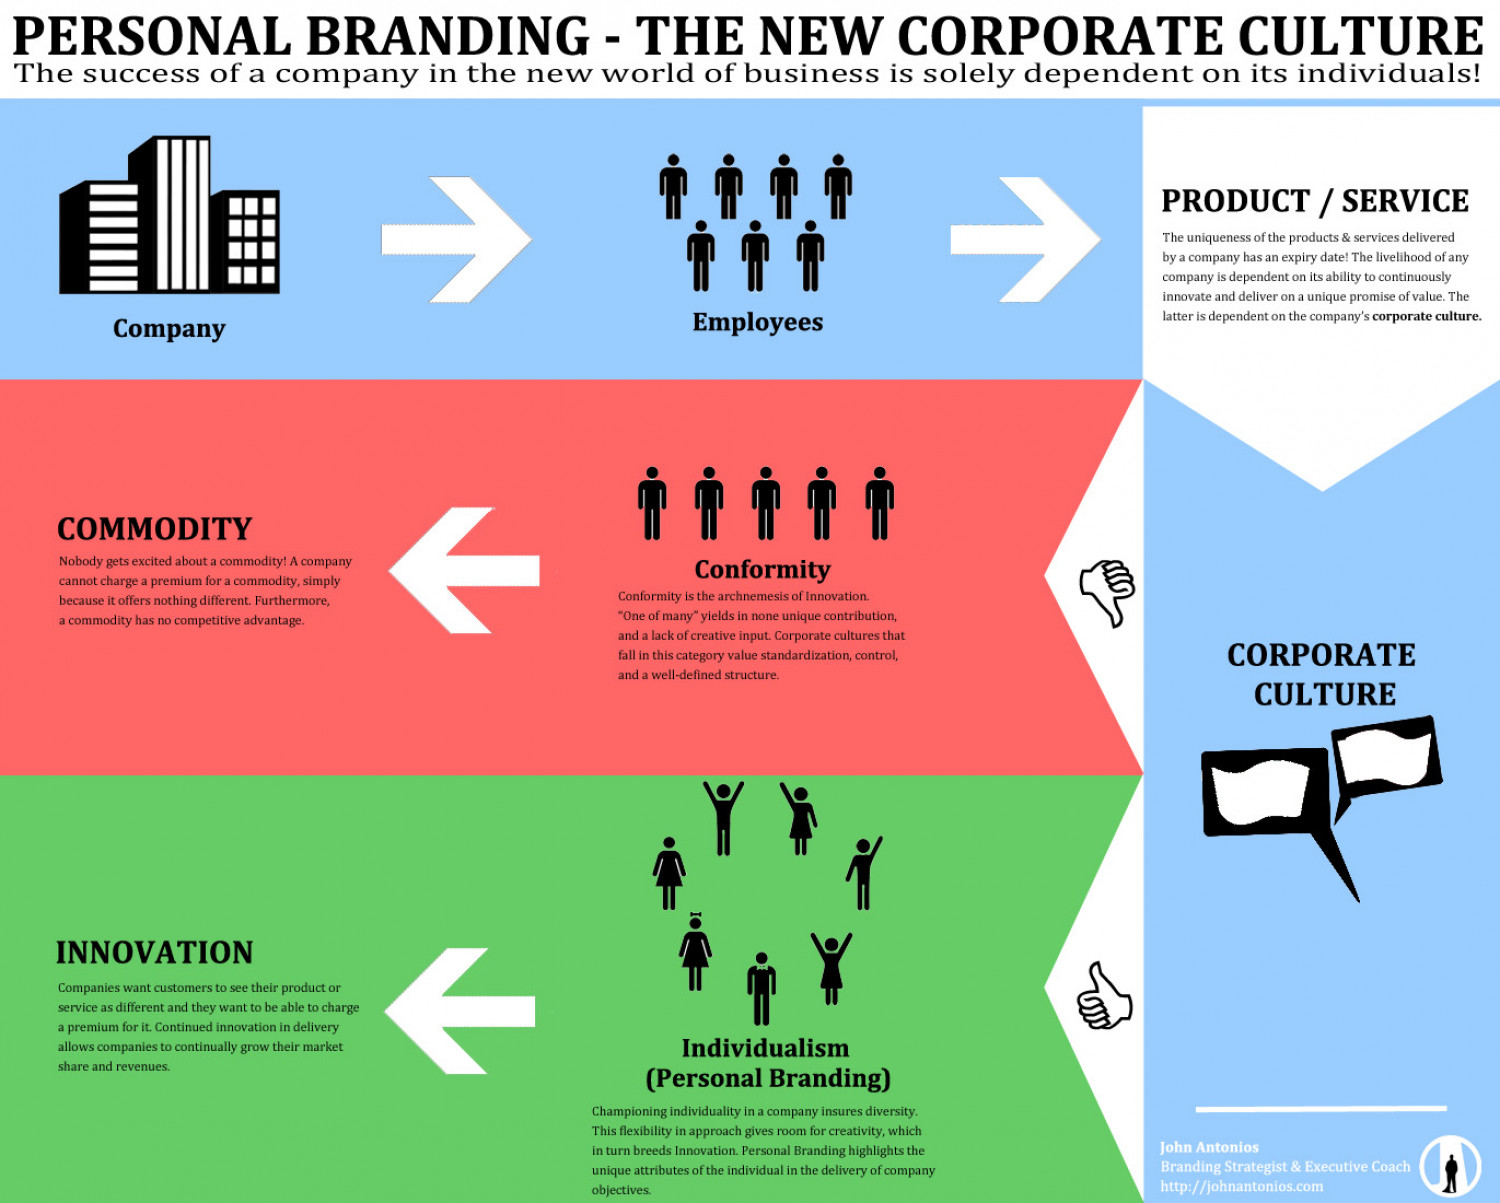 Personal Branding - The New Corporate Culture Infographic